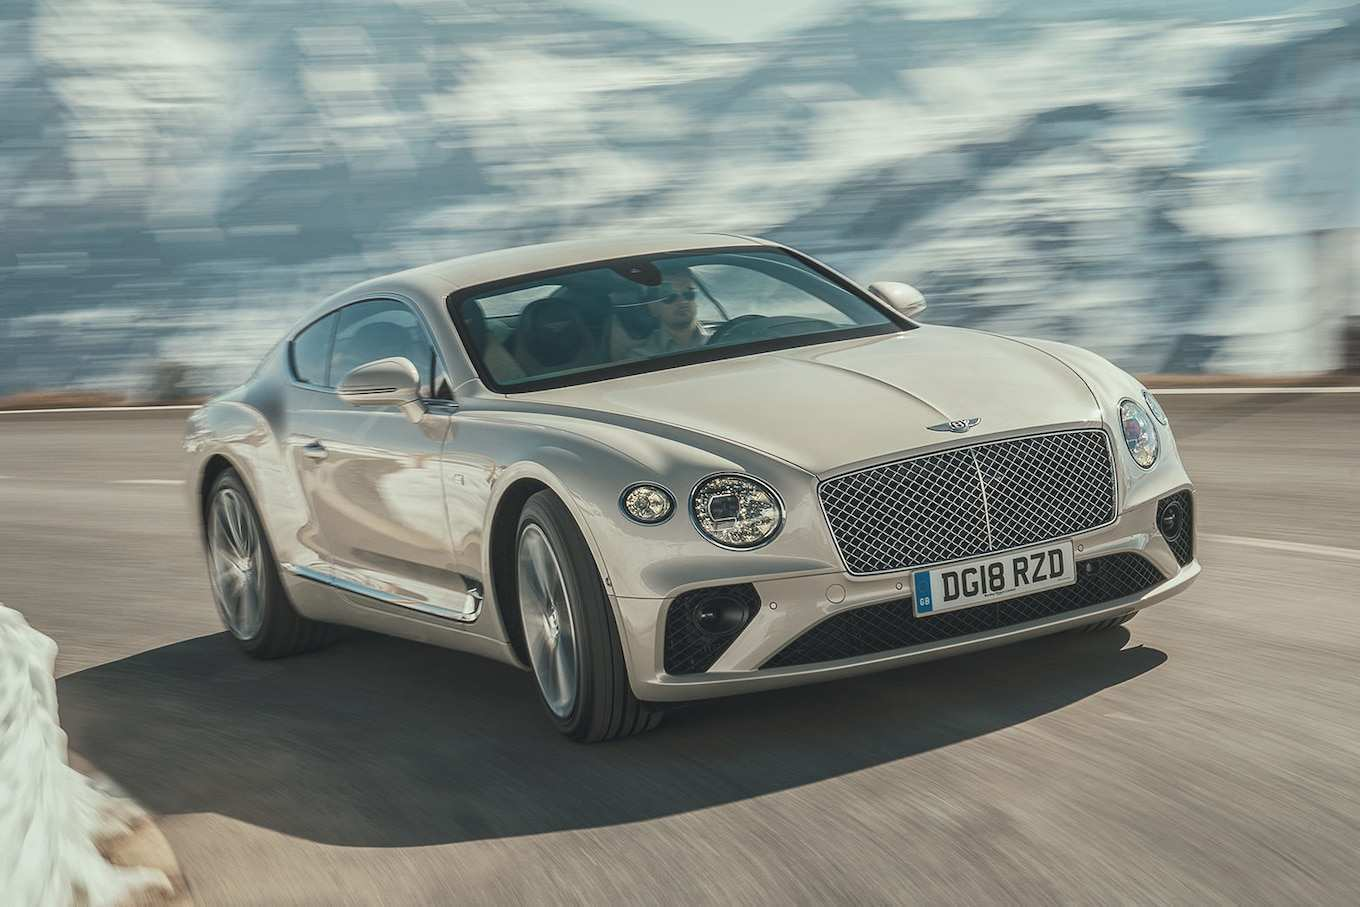 35 New 2019 Bentley Continental Gt Release Date Specs and Review with 2019 Bentley Continental Gt Release Date